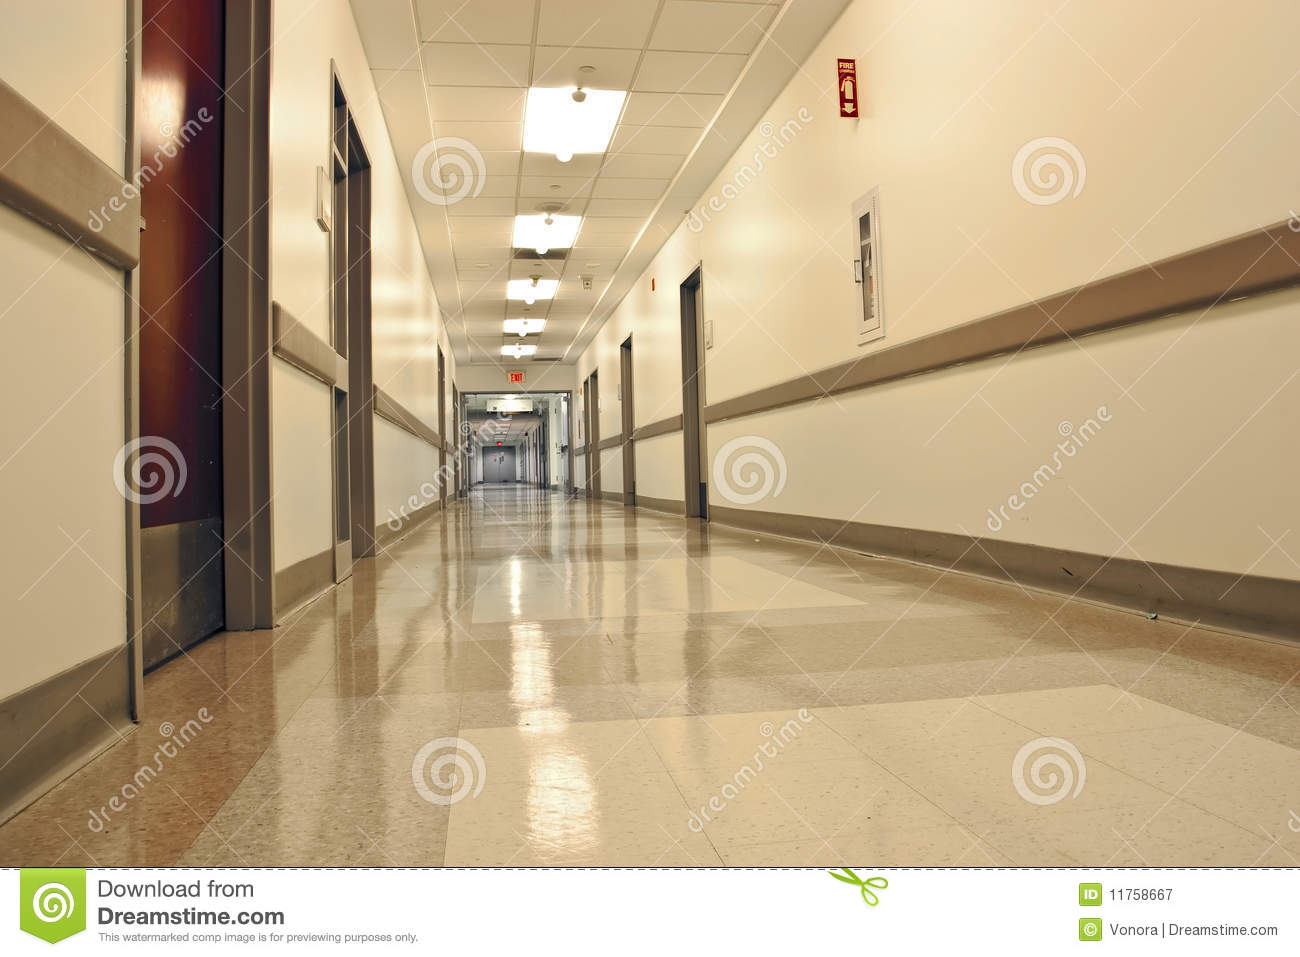 Hospital Corridor Stock Image Image Of Fluorescent Light